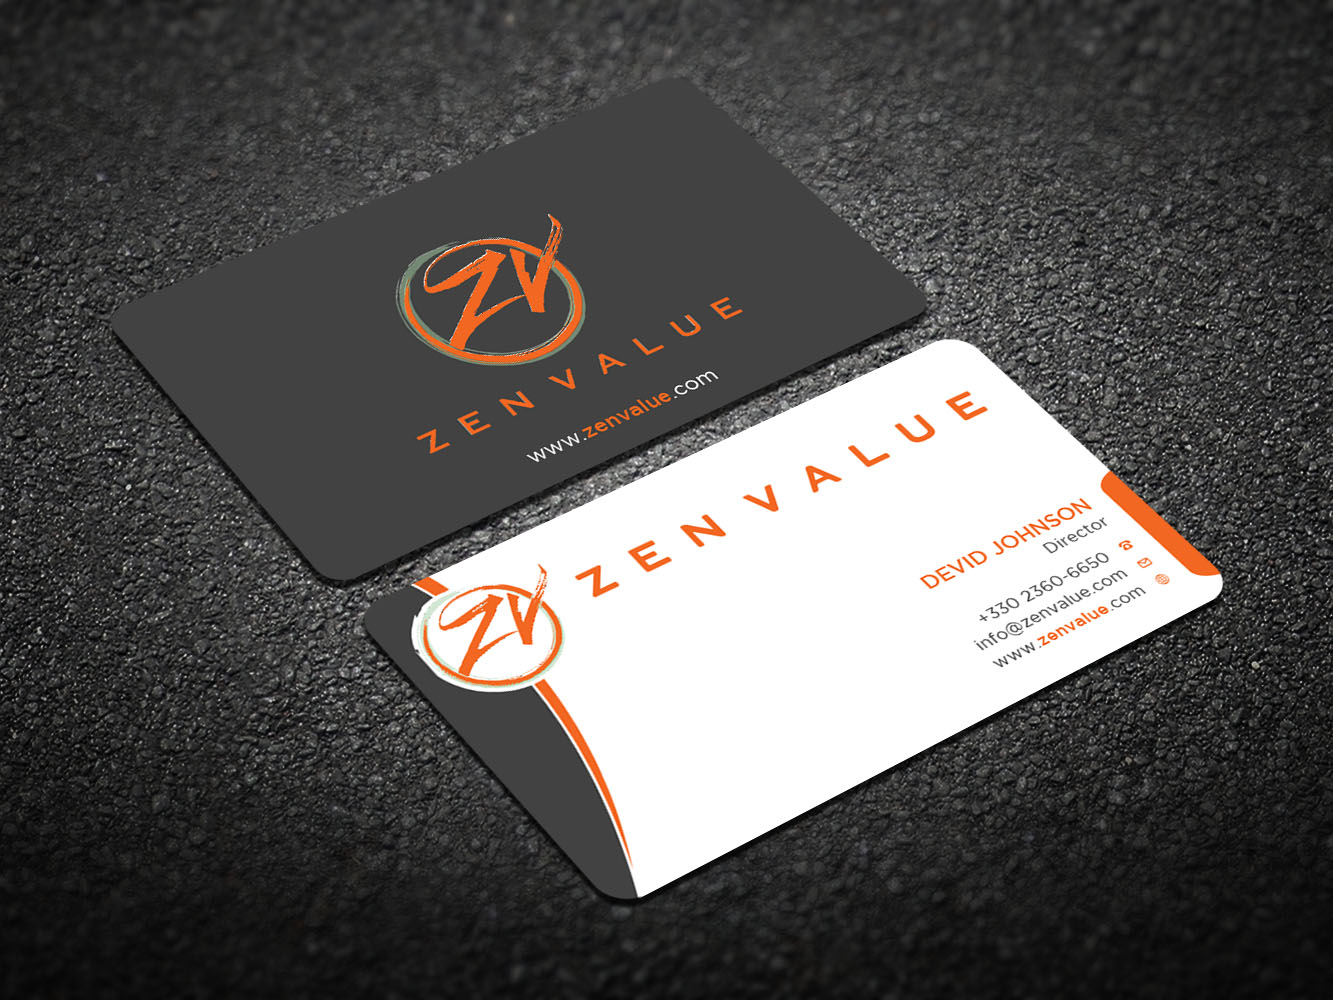 Upmarket bold management consulting business card design for zen business card design by design xeneration for zen value design 12588935 colourmoves